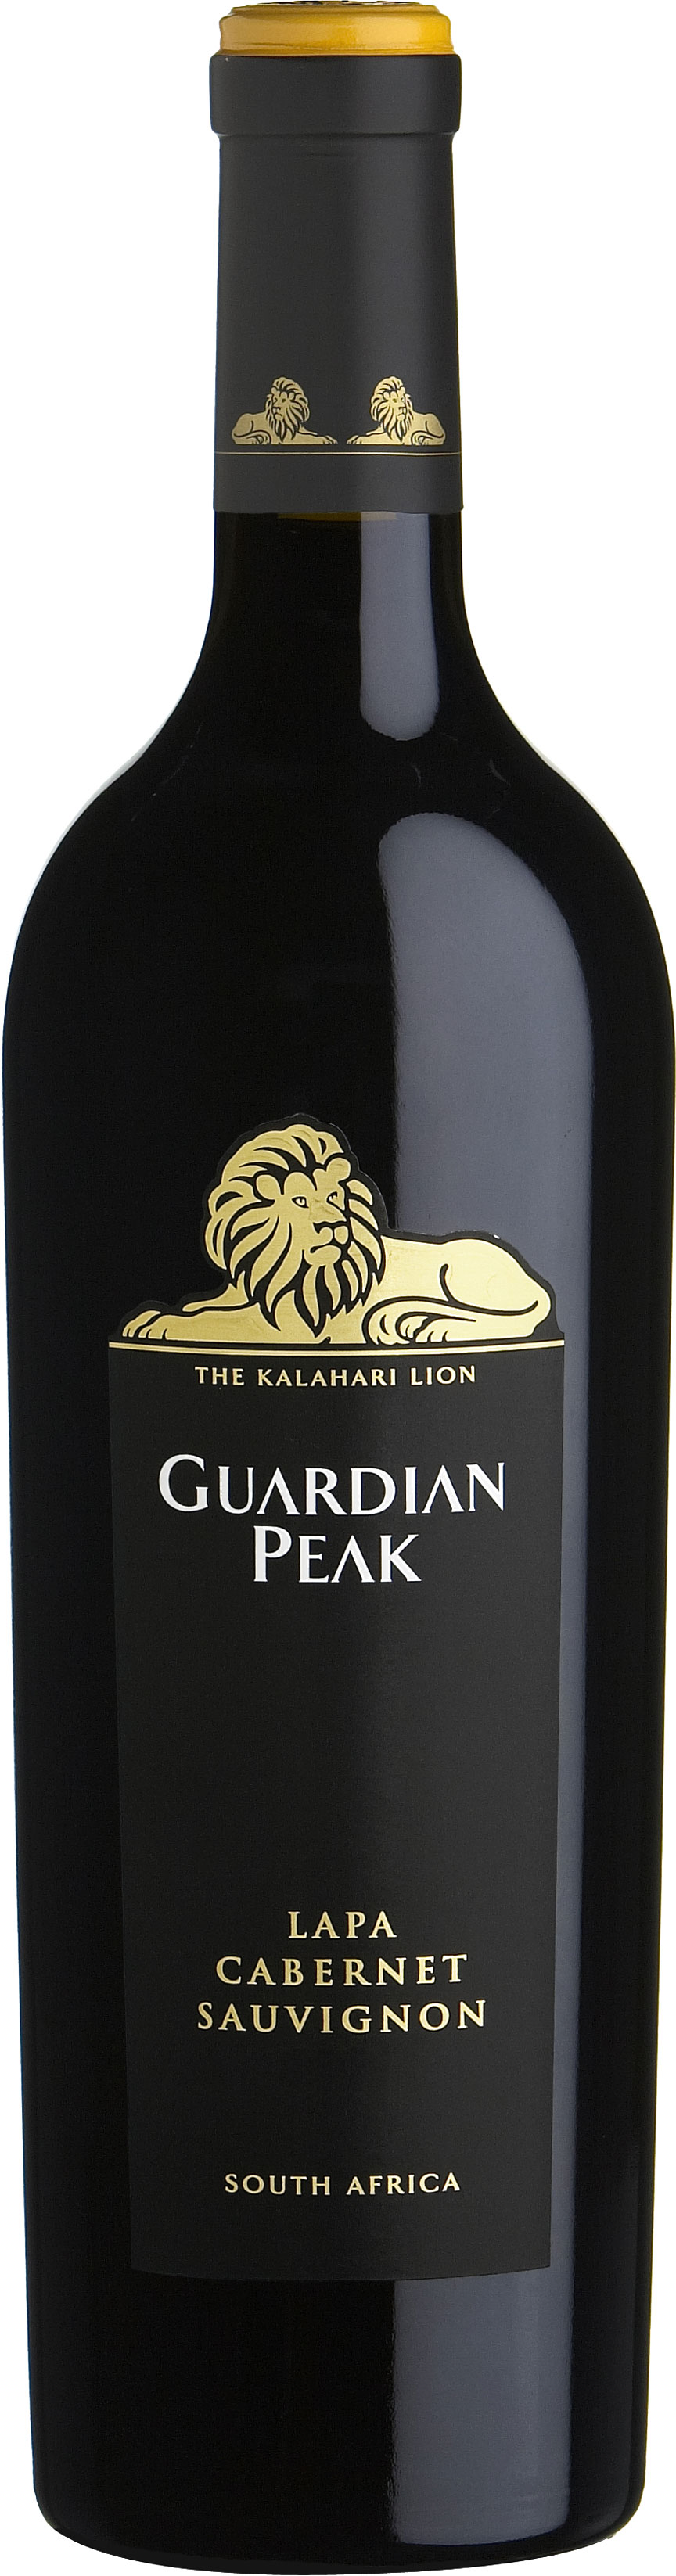 Guardian Peak - Lapa Cabernet Sauvignon 2016 75cl Bottle